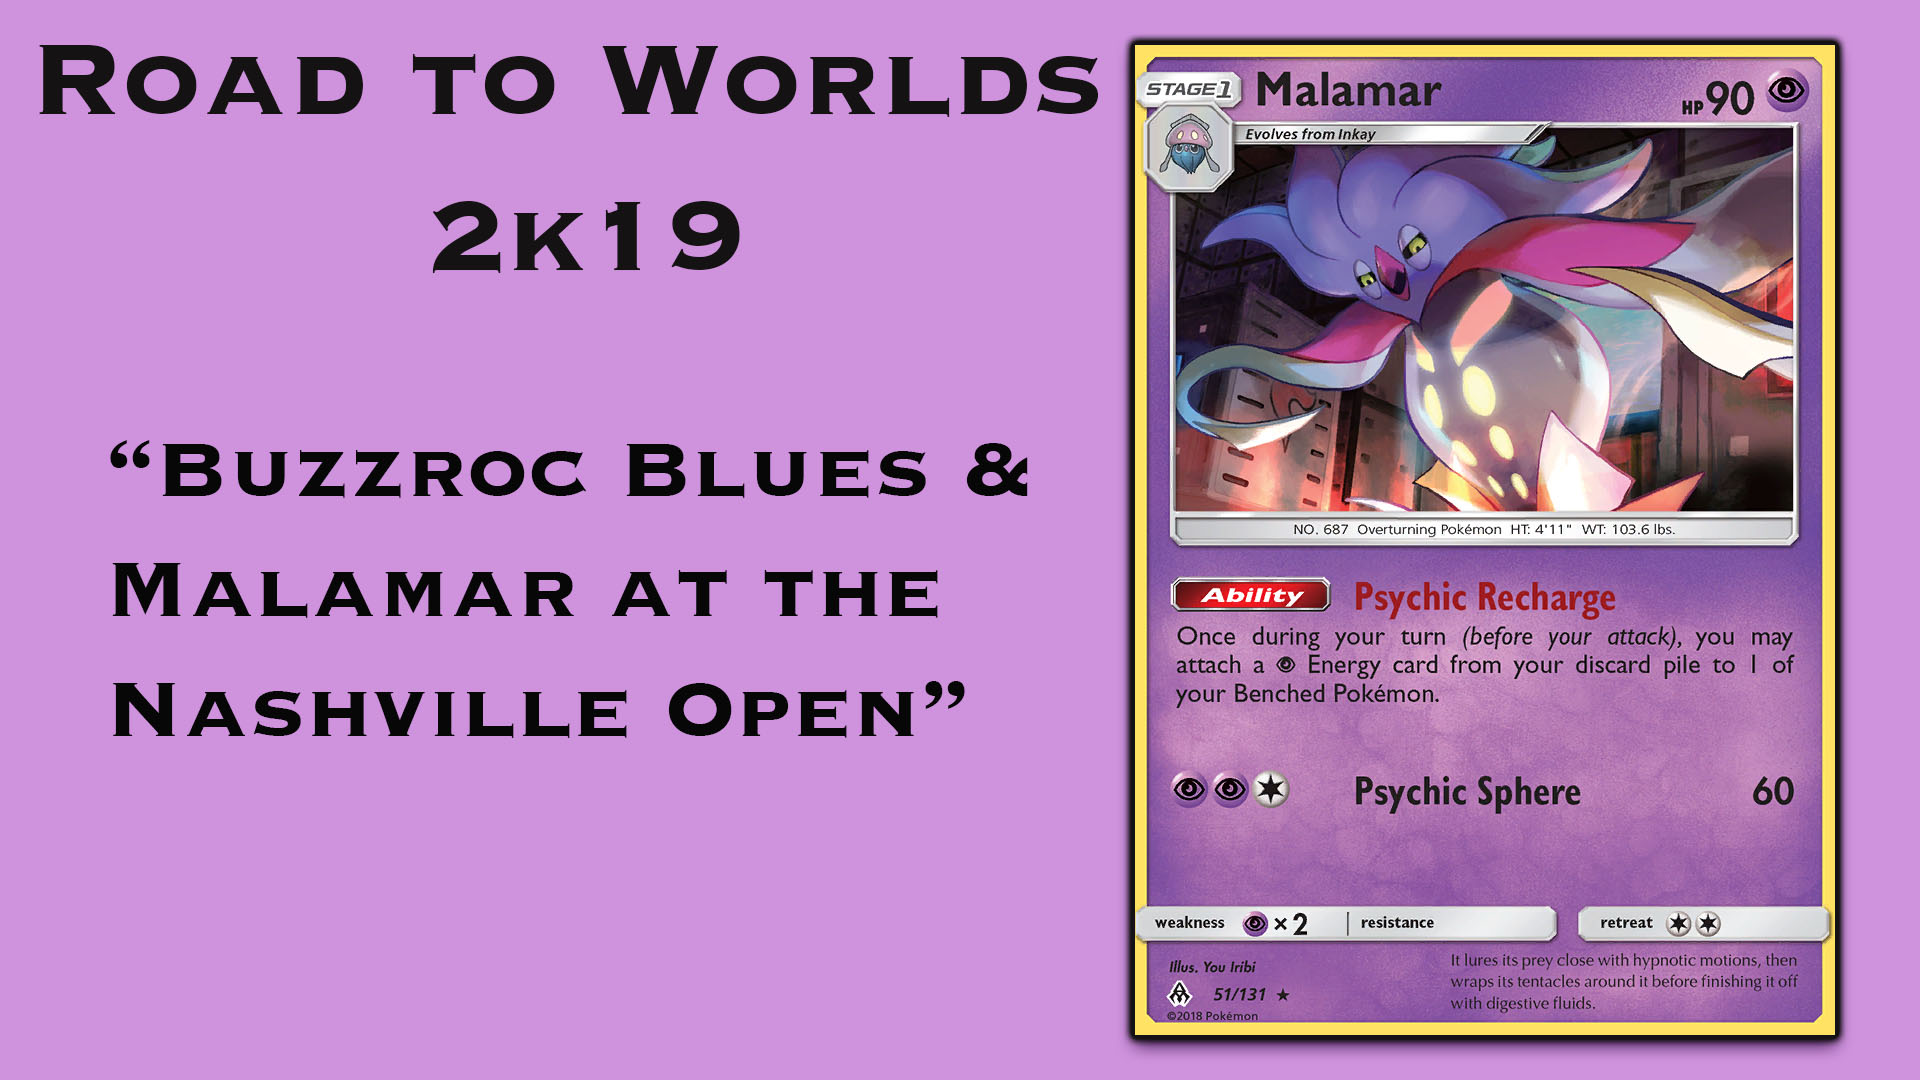 BuzzRoc Blues & Malamar at the Nashville Open – Road to Worlds 2k19